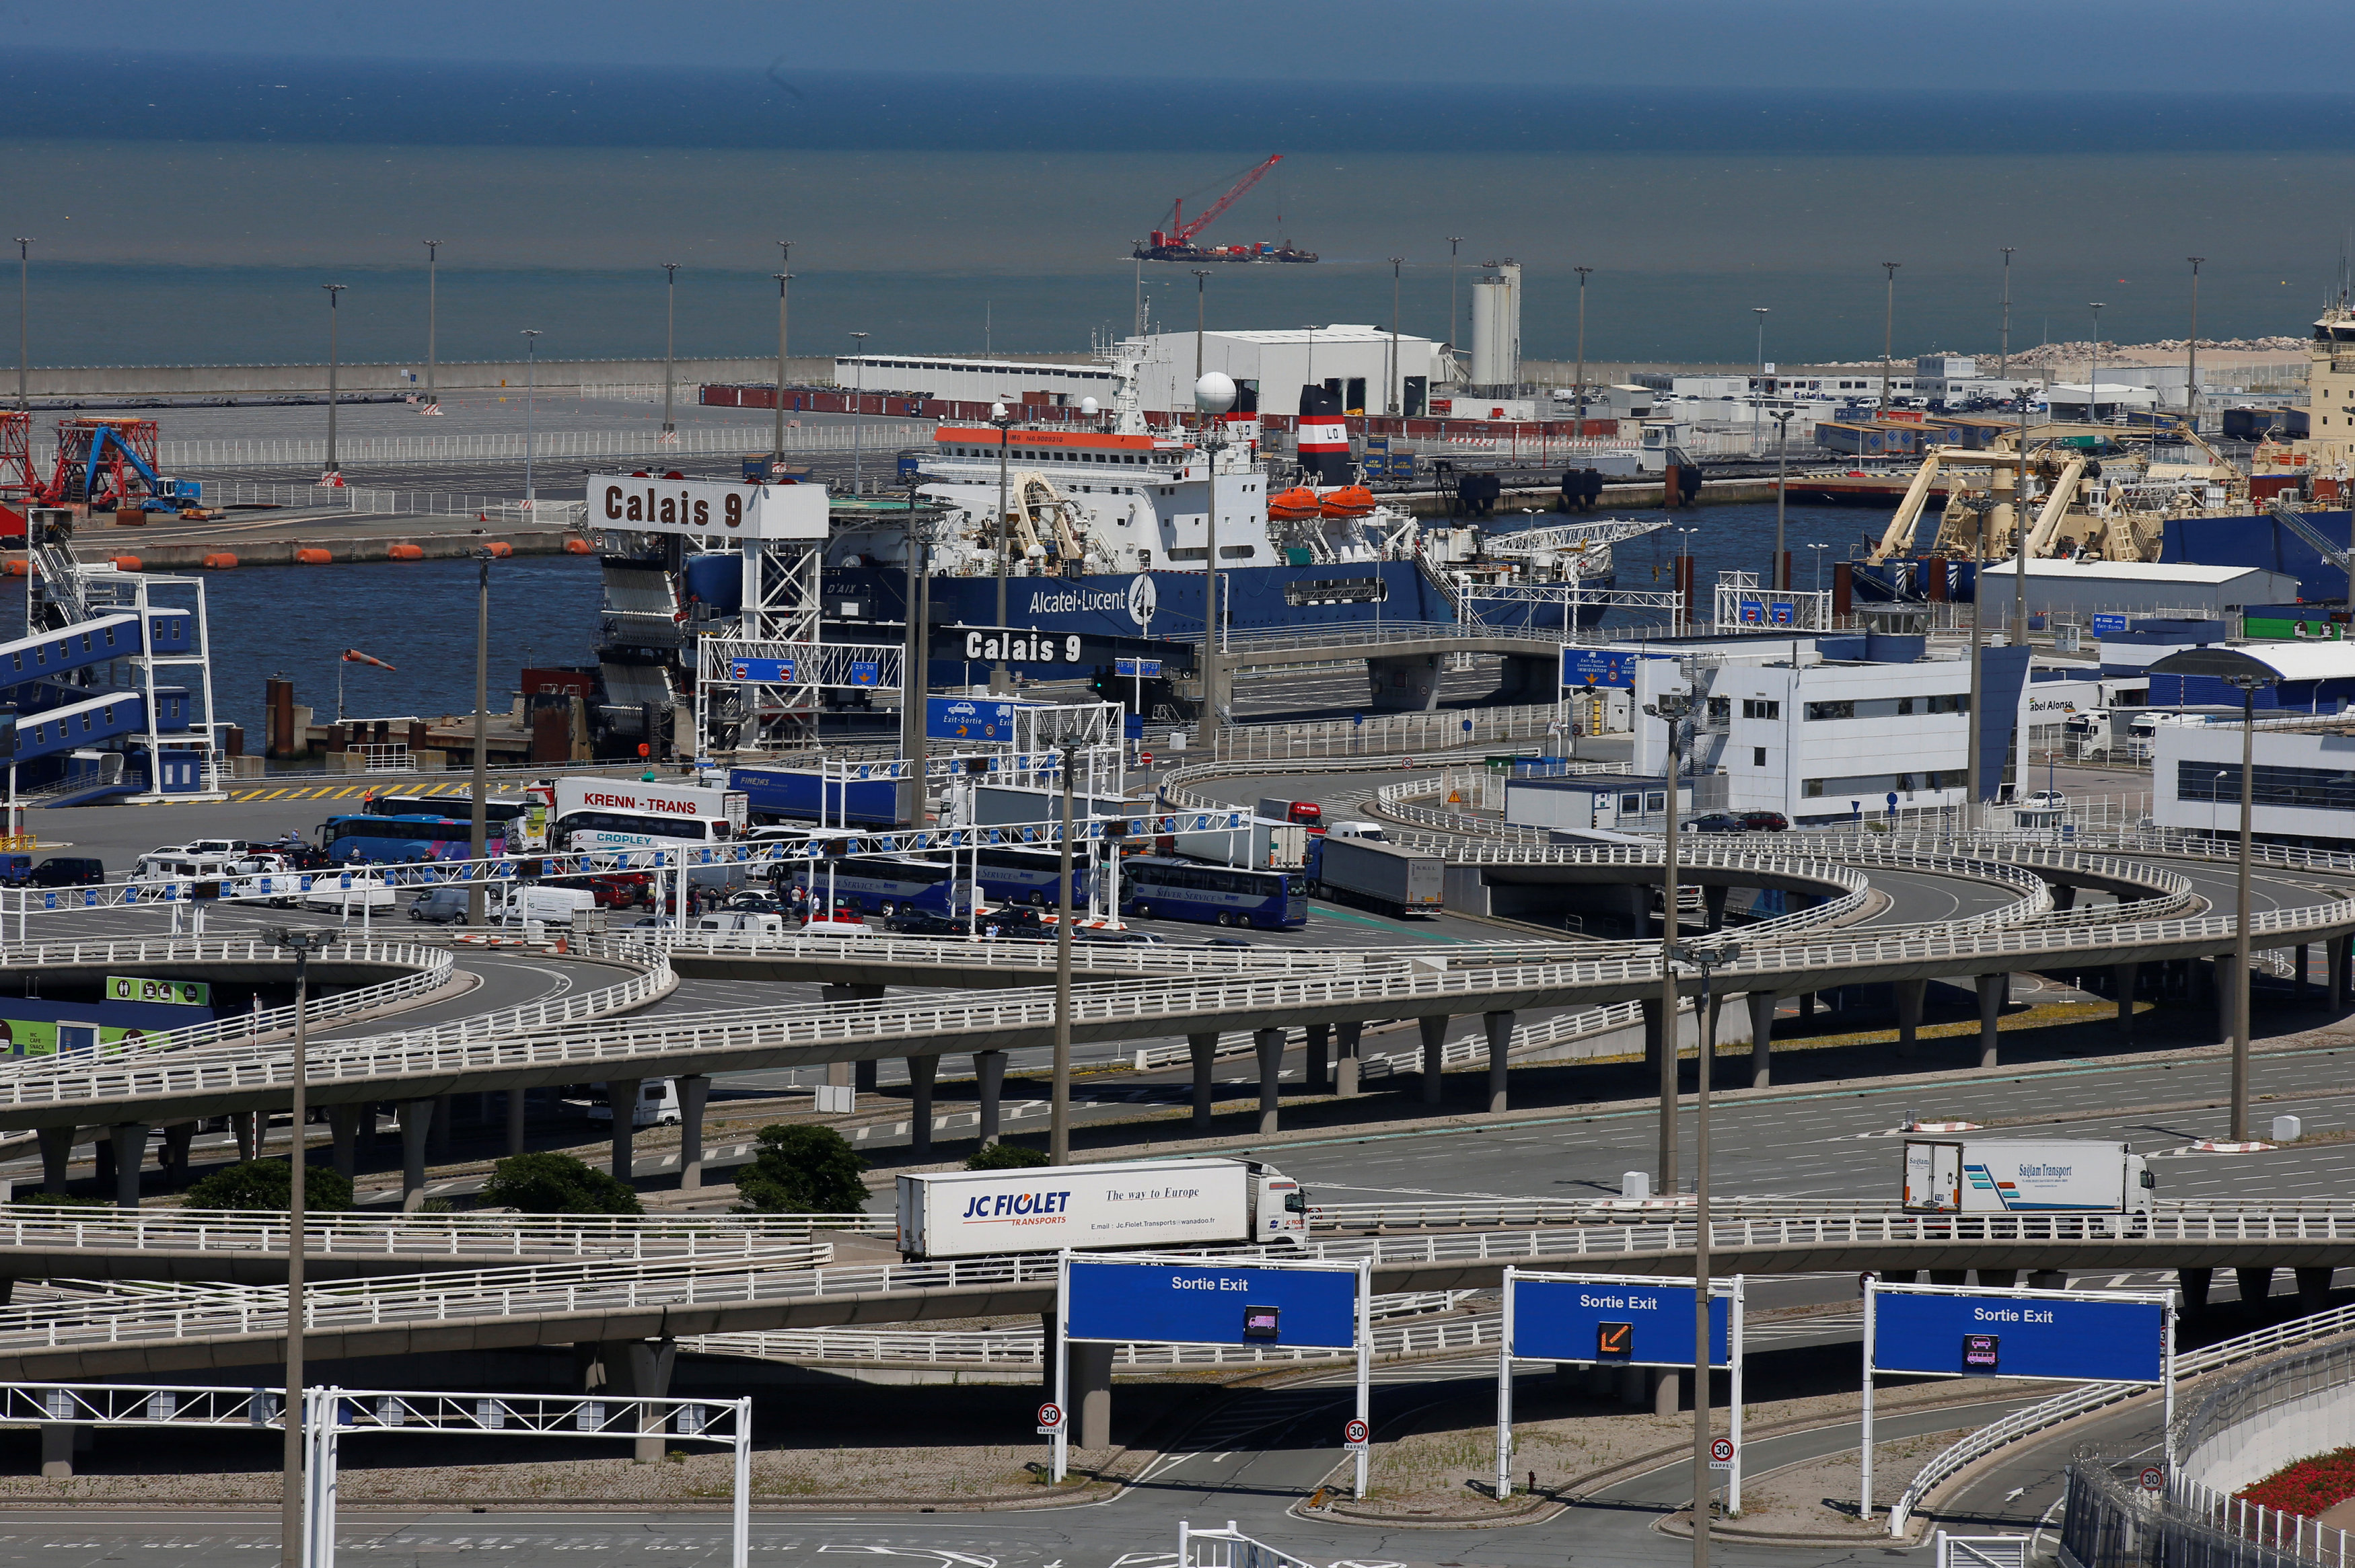 View of the port of Calais, France (File)